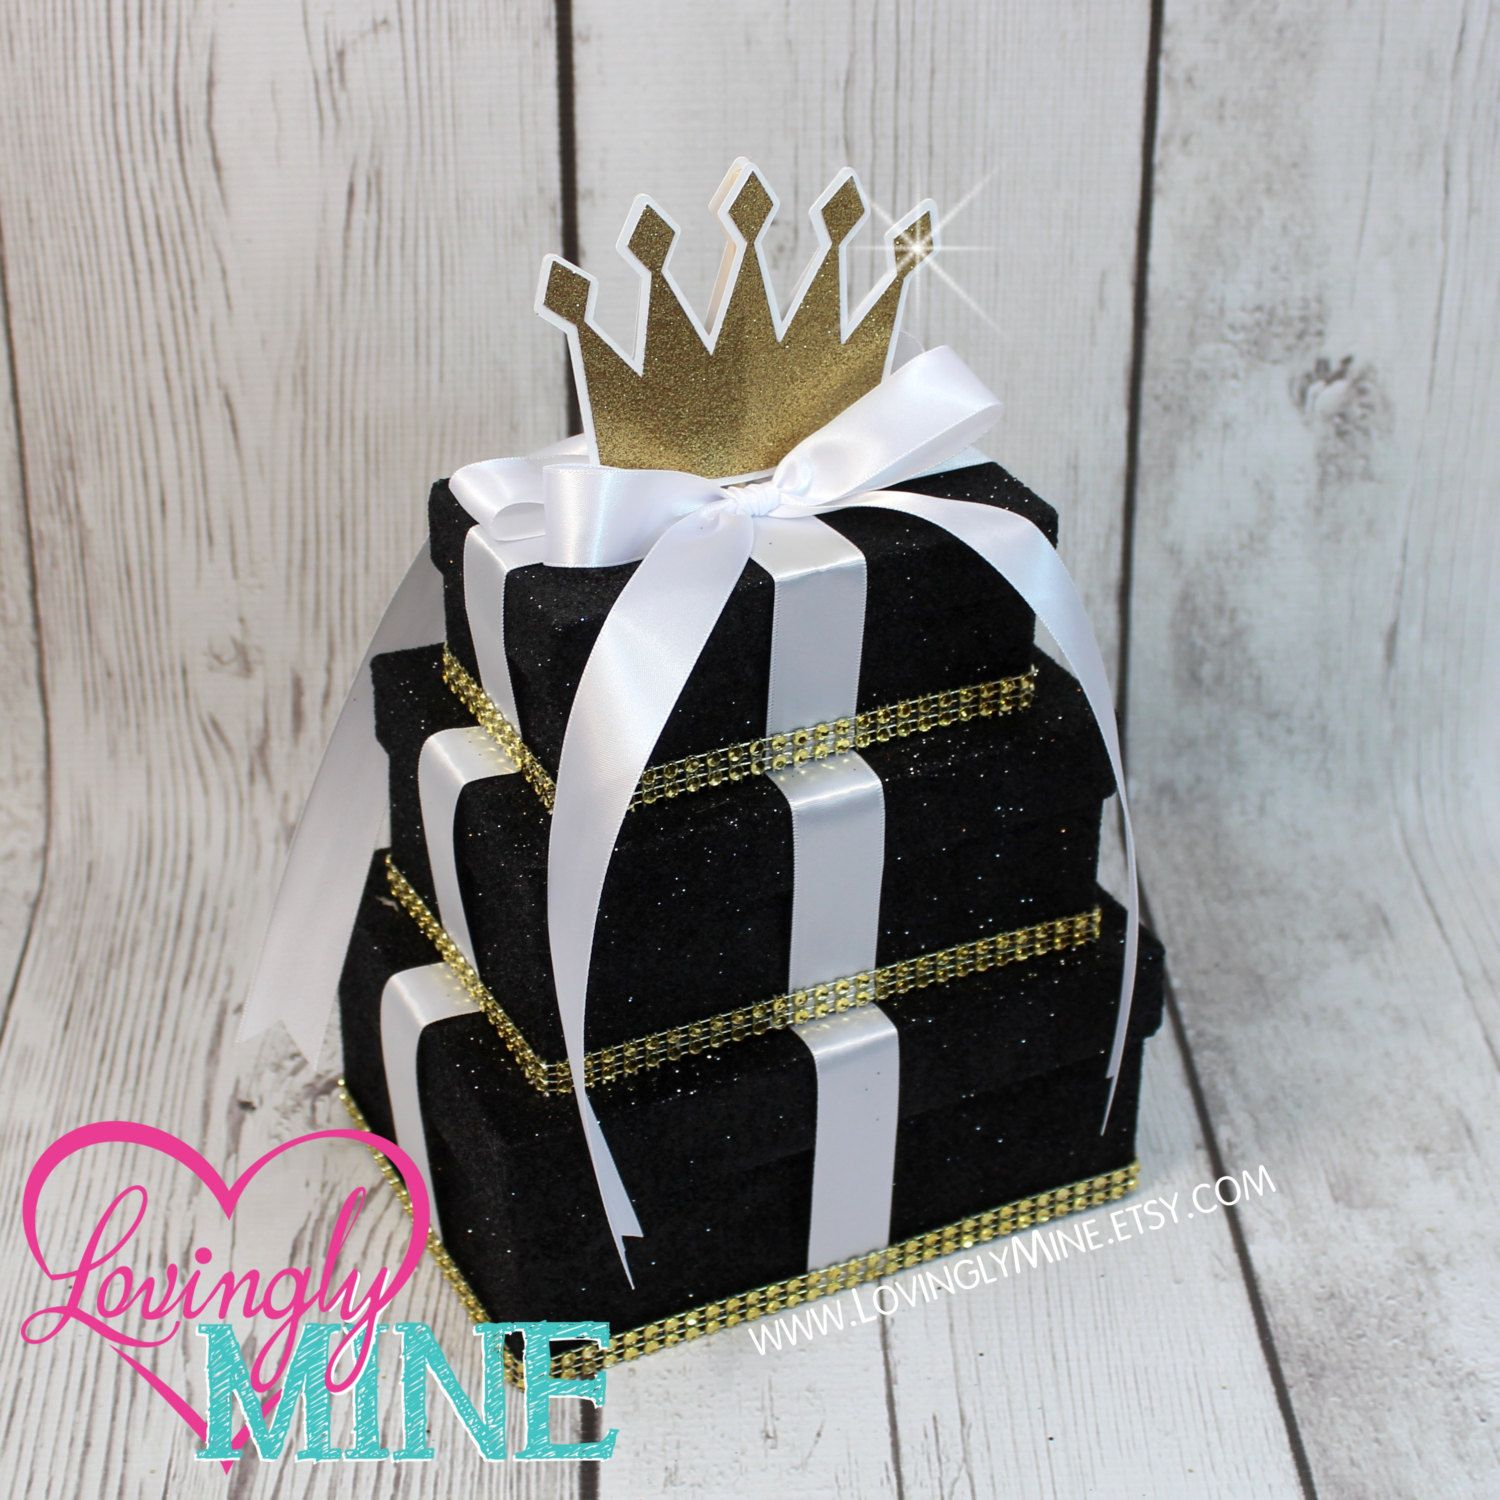 Small Centerpiece   Small Rectangular 3 Tier Black Prince Centerpiece In  Fine Black Glitter, White And Gold   Birthday, Baby Shower Etc By  LovinglyMine On ...